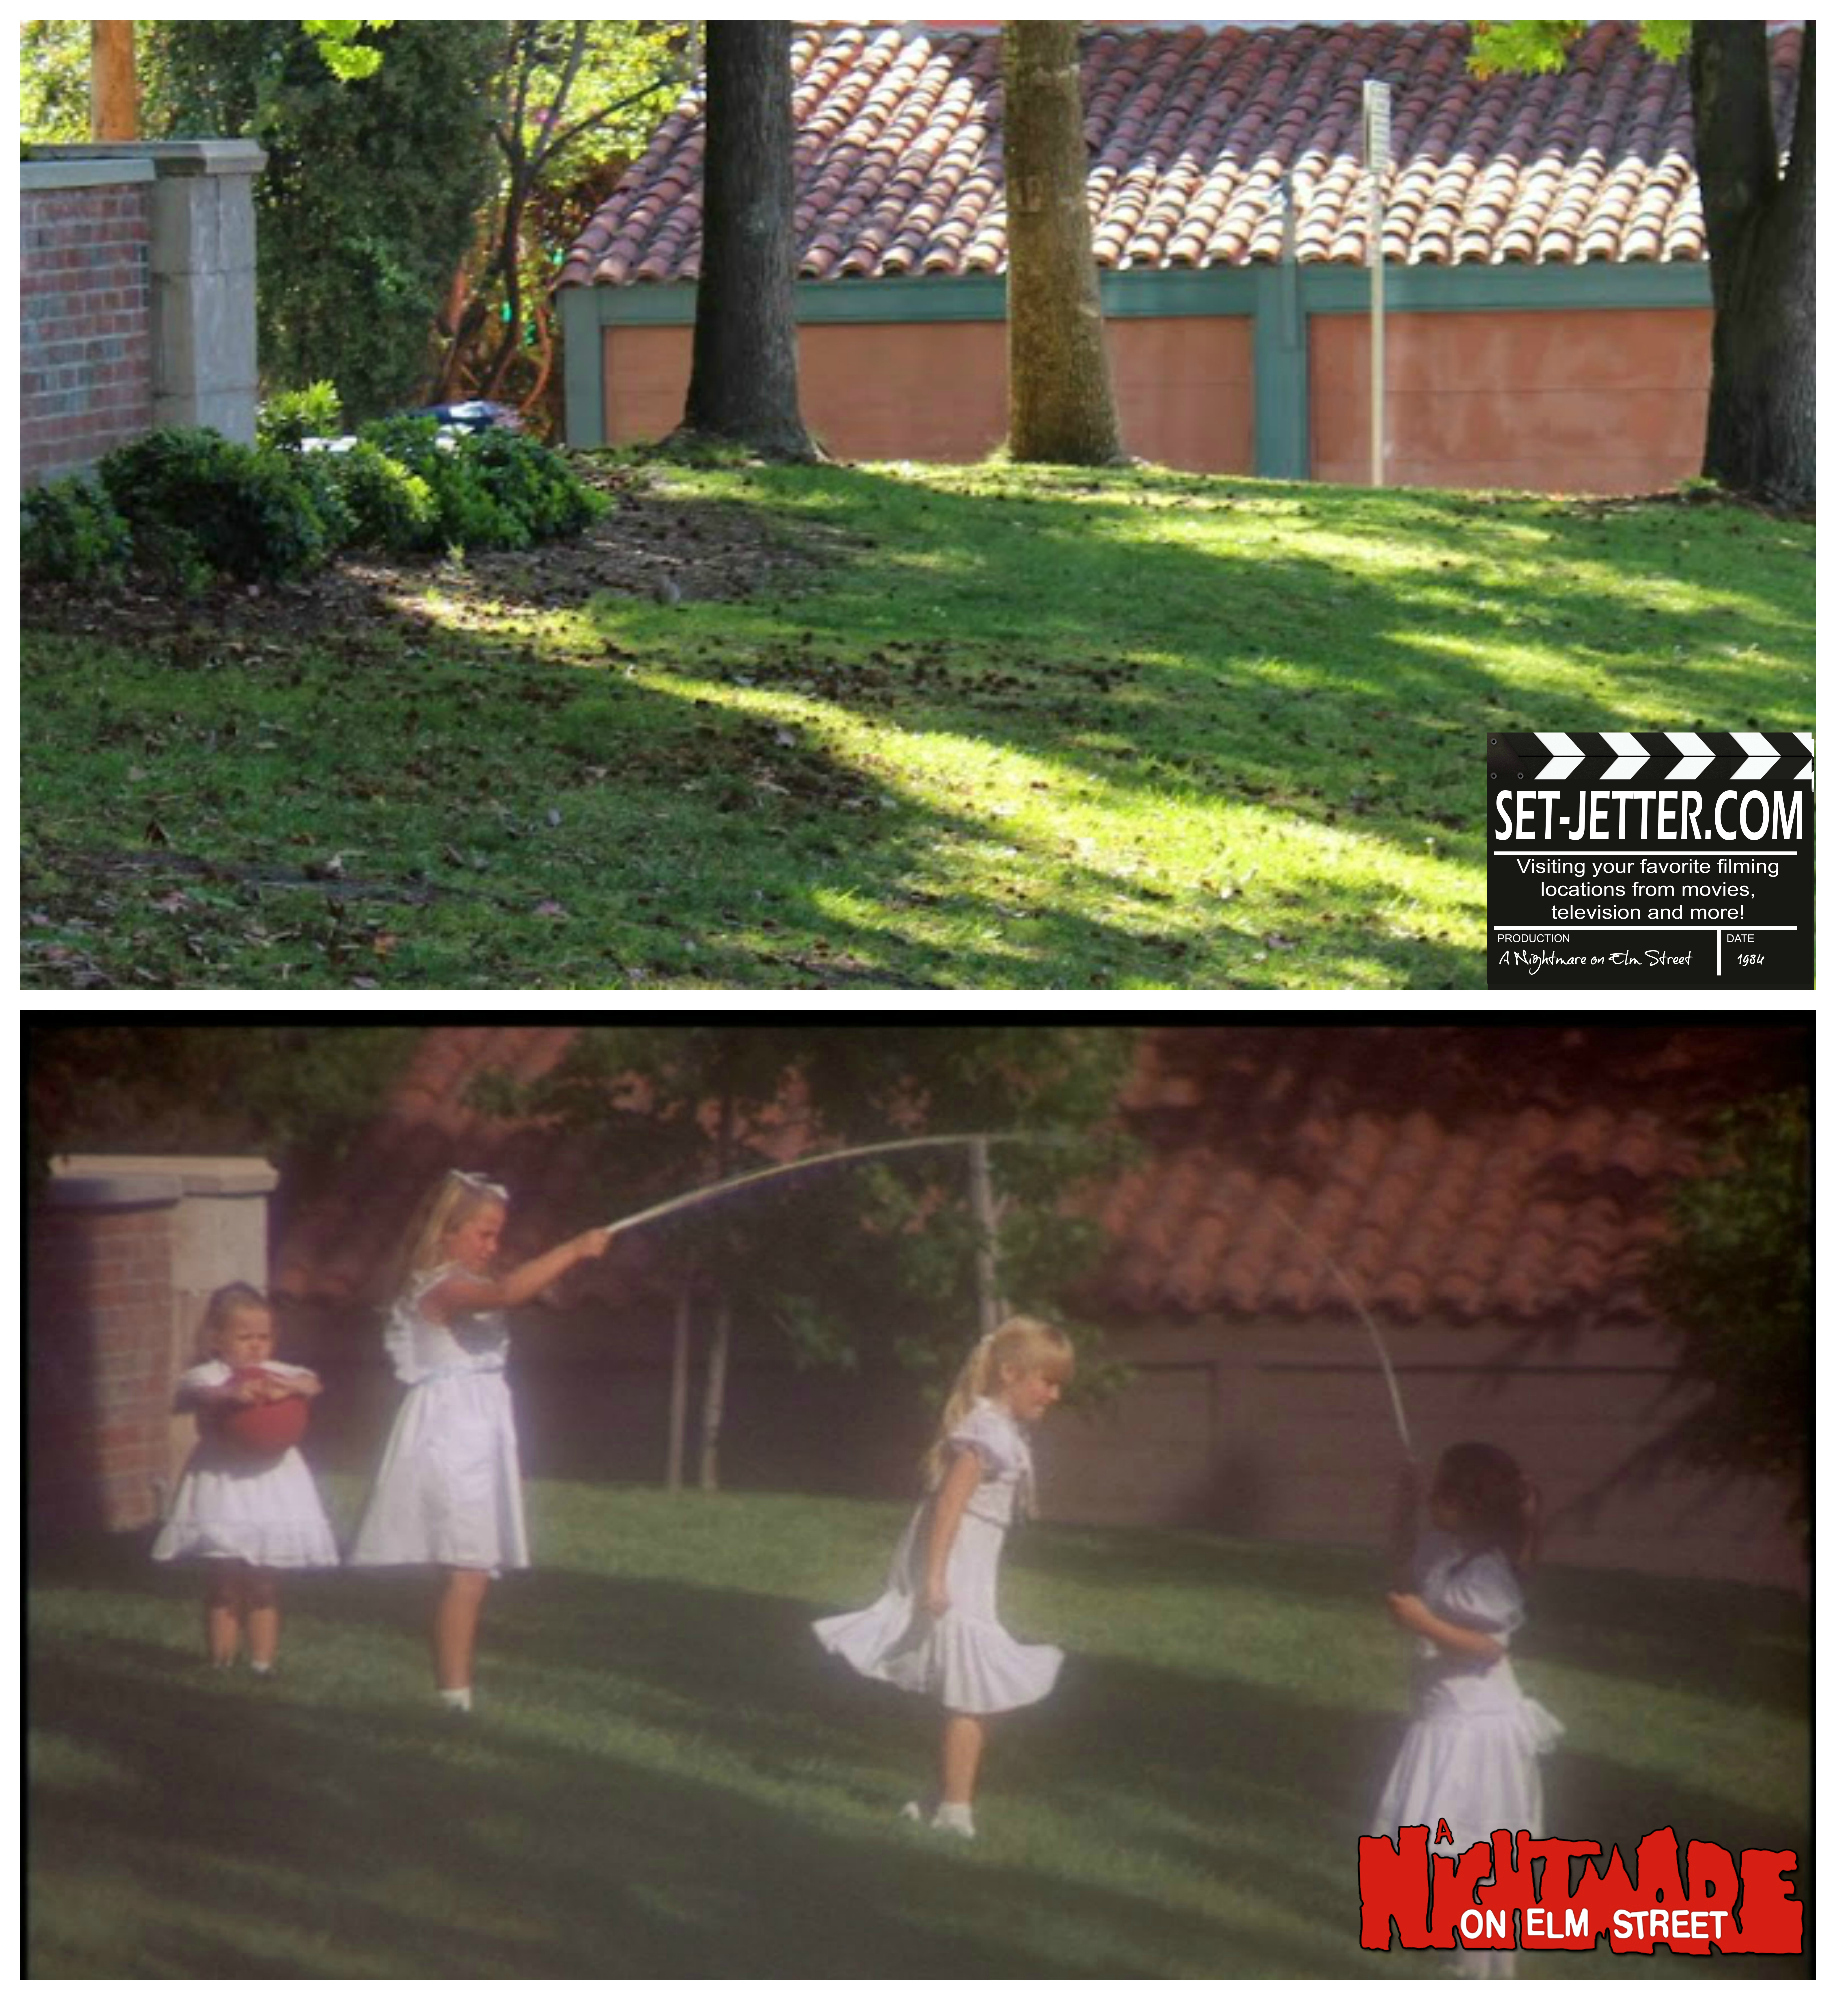 Nightmare On Elm Street comparison 01.jpg